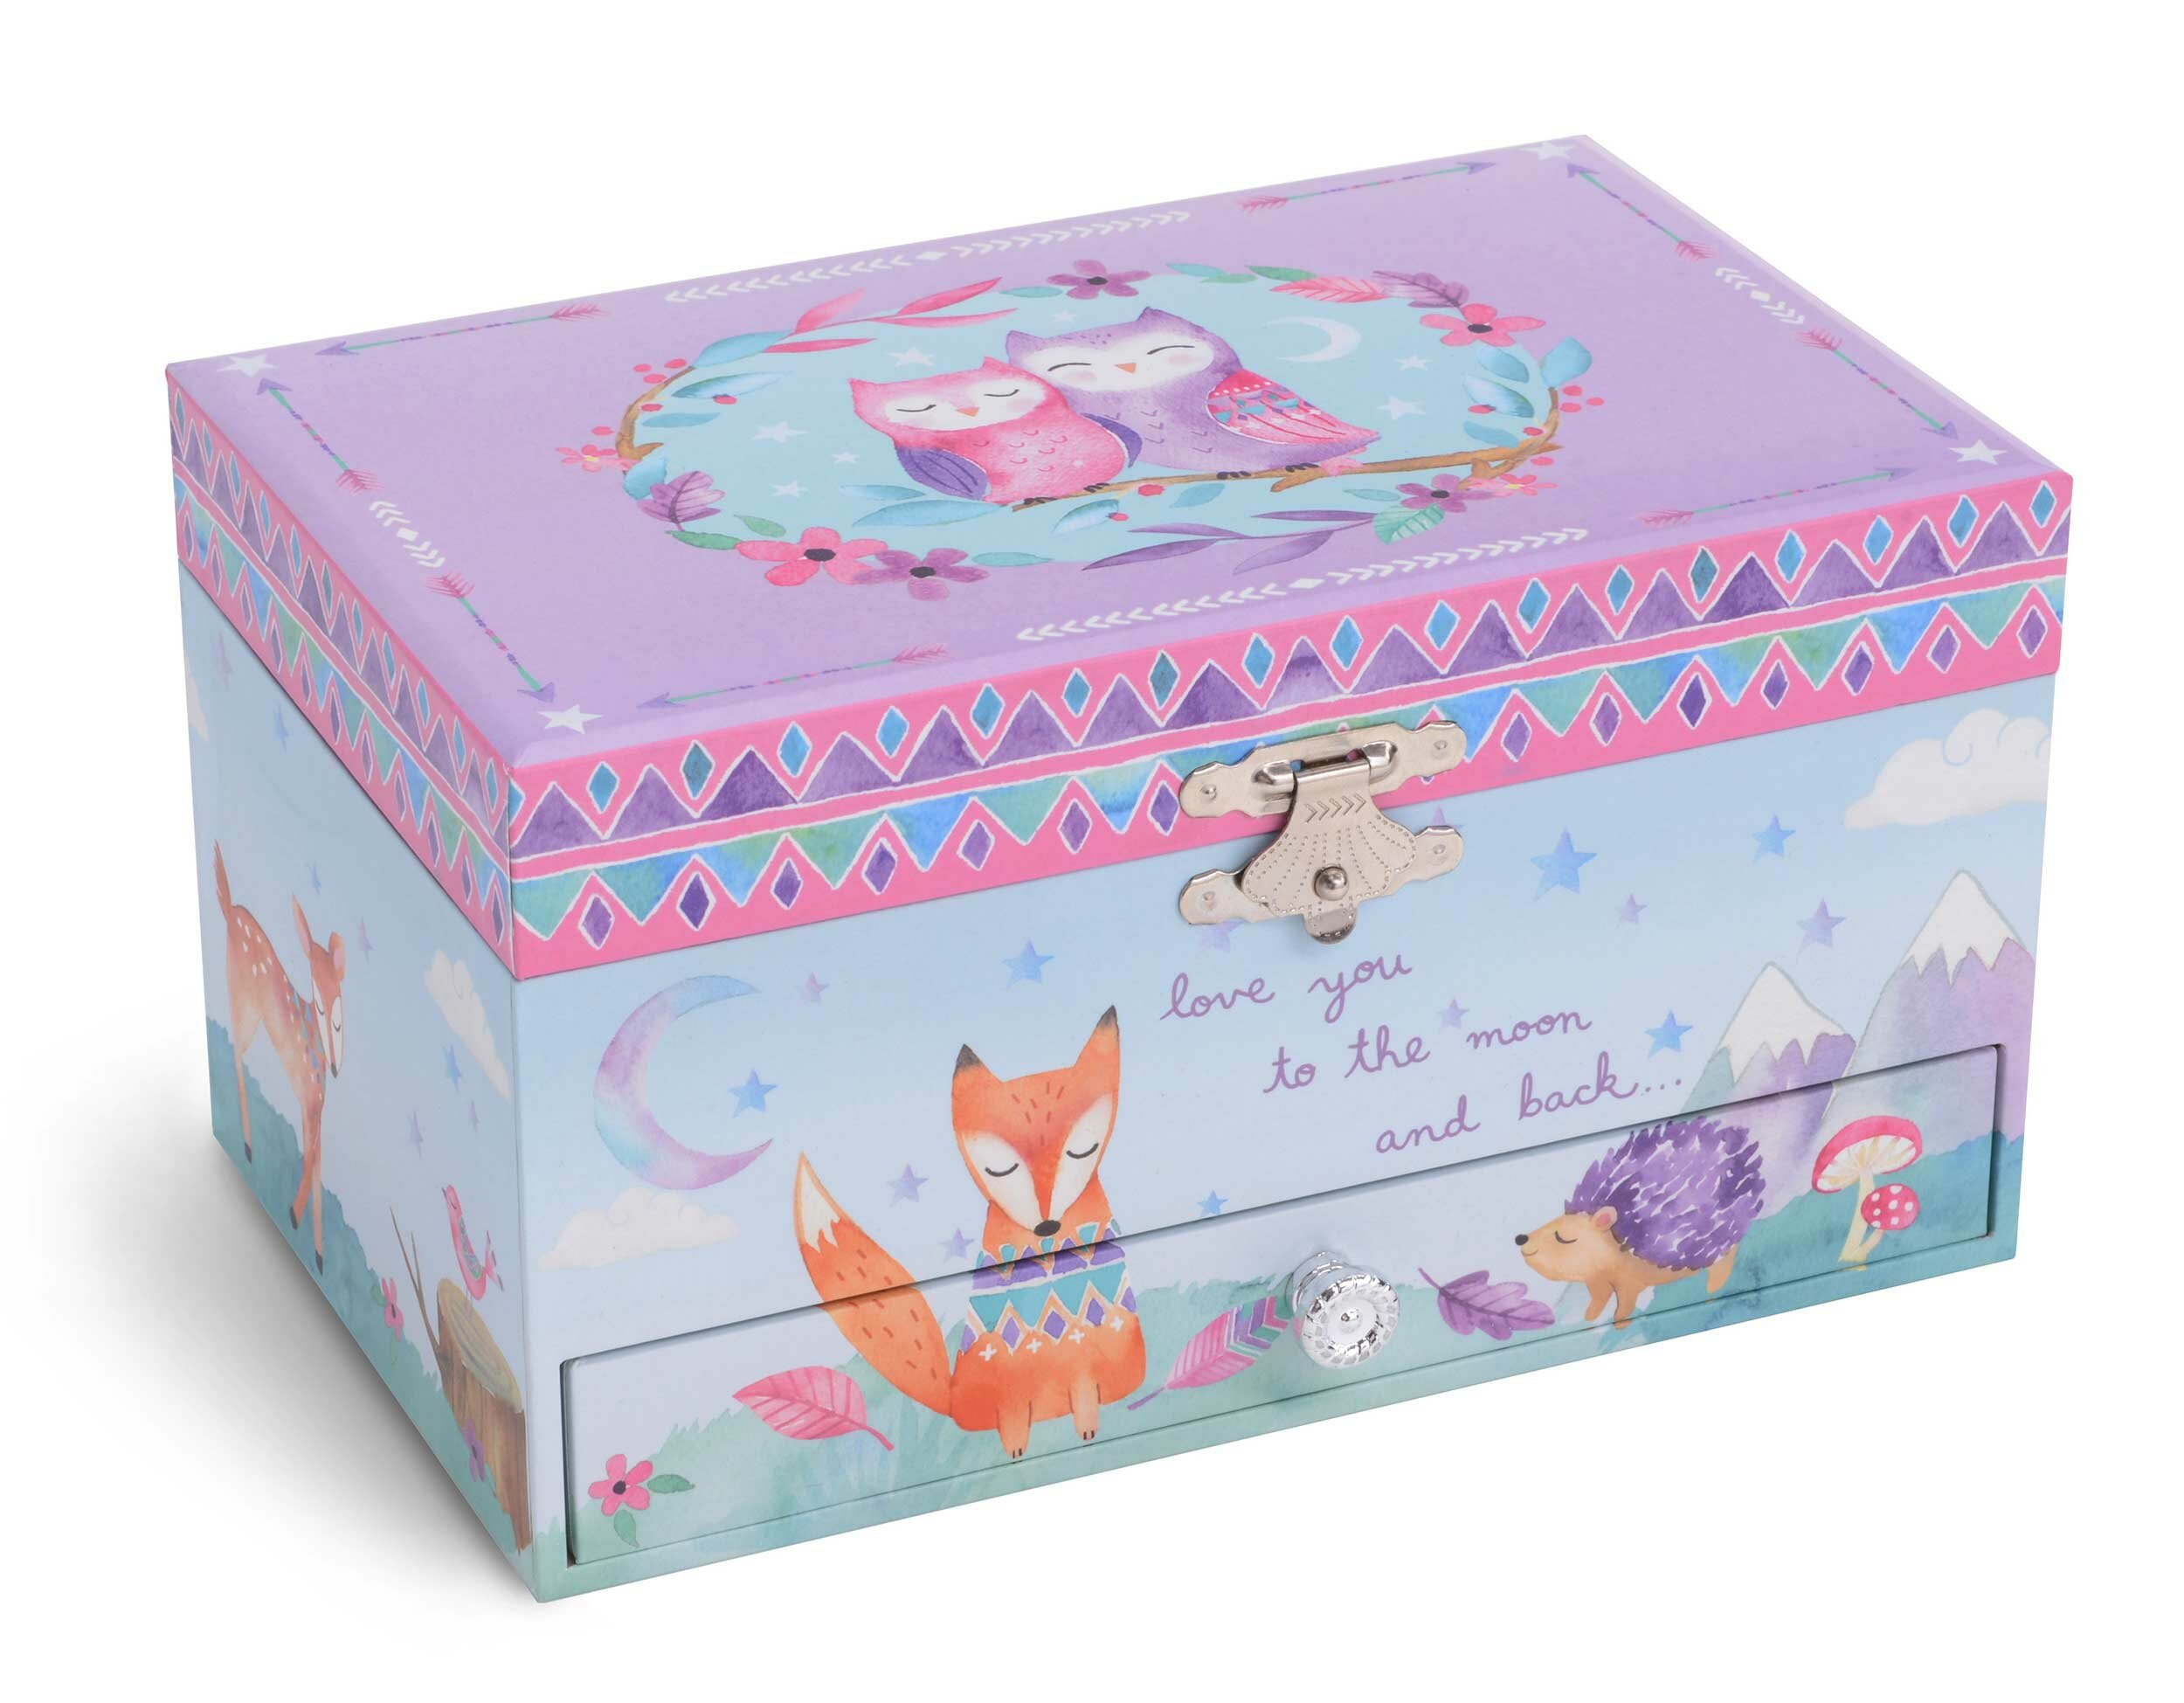 63fed0f9c1 Harriet Bee Woodland Twinkle Twinkle Little Star Musical Jewelry Box |  Wayfair